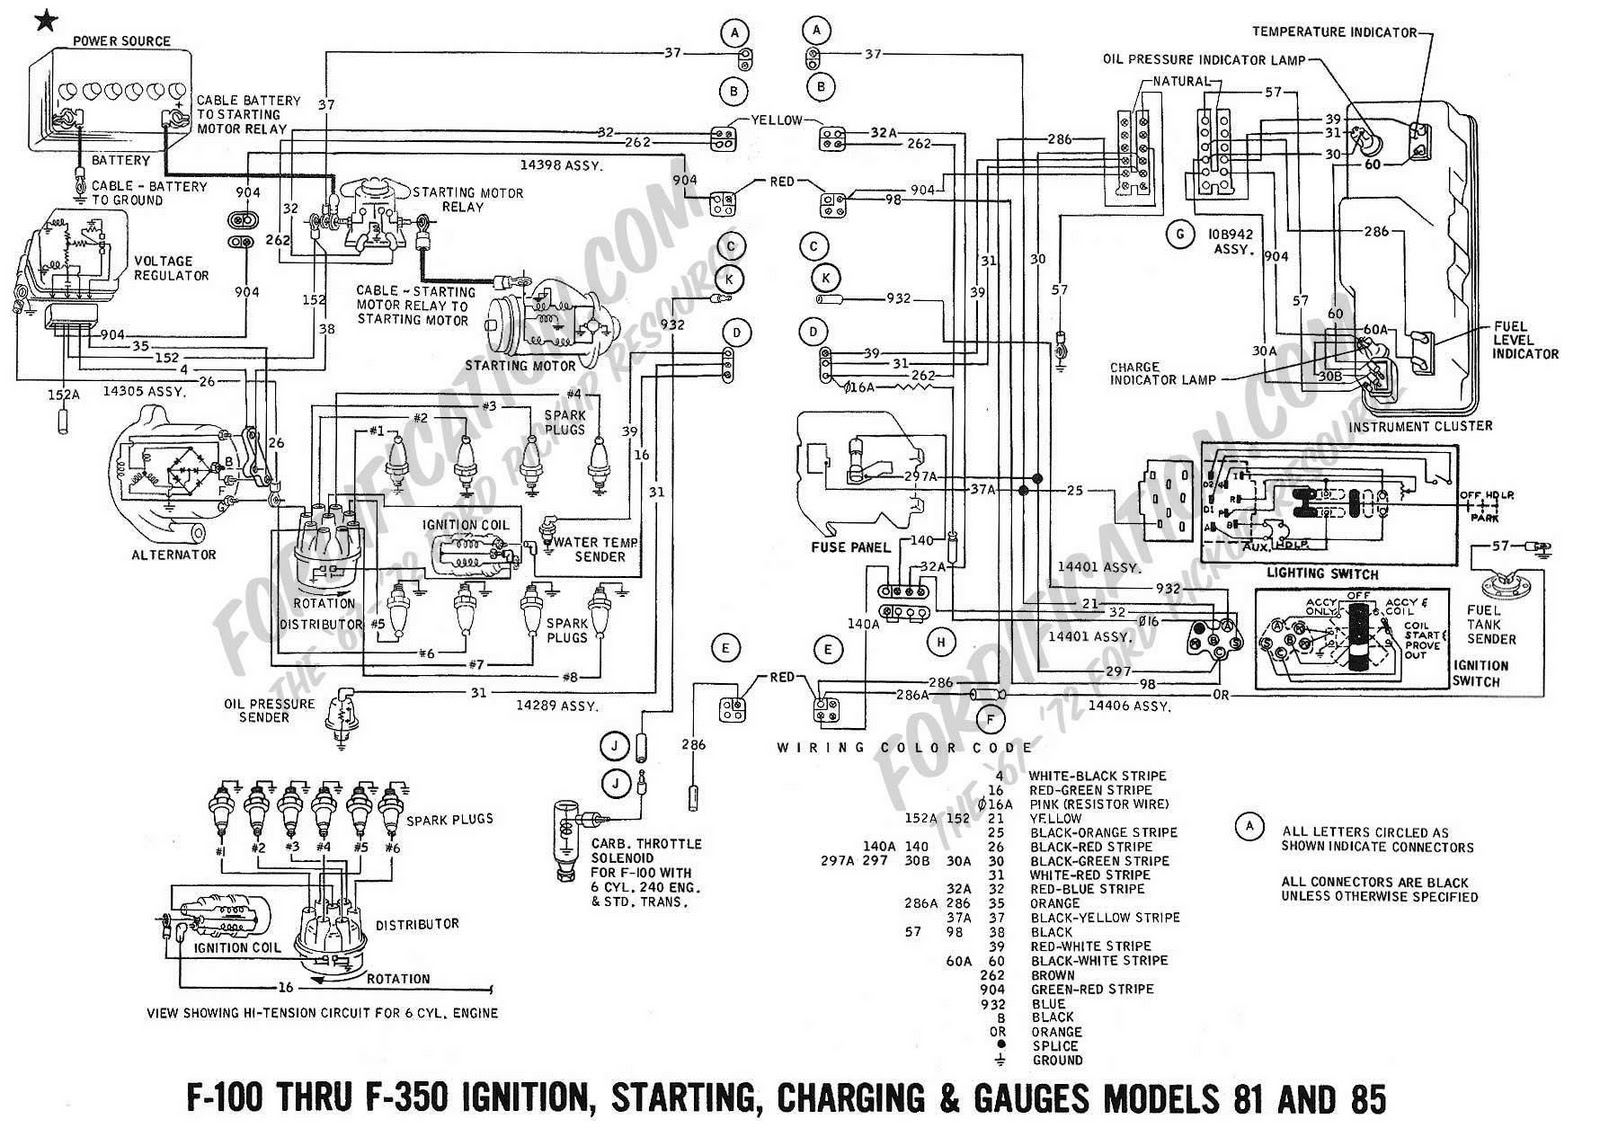 Ford Wiring Diagram Diagrams For Dummies 1966 F100 Engine Free Picture Pinto Starter Motor Library Rh 76 Muehlwald De Form 7795p 74 1915